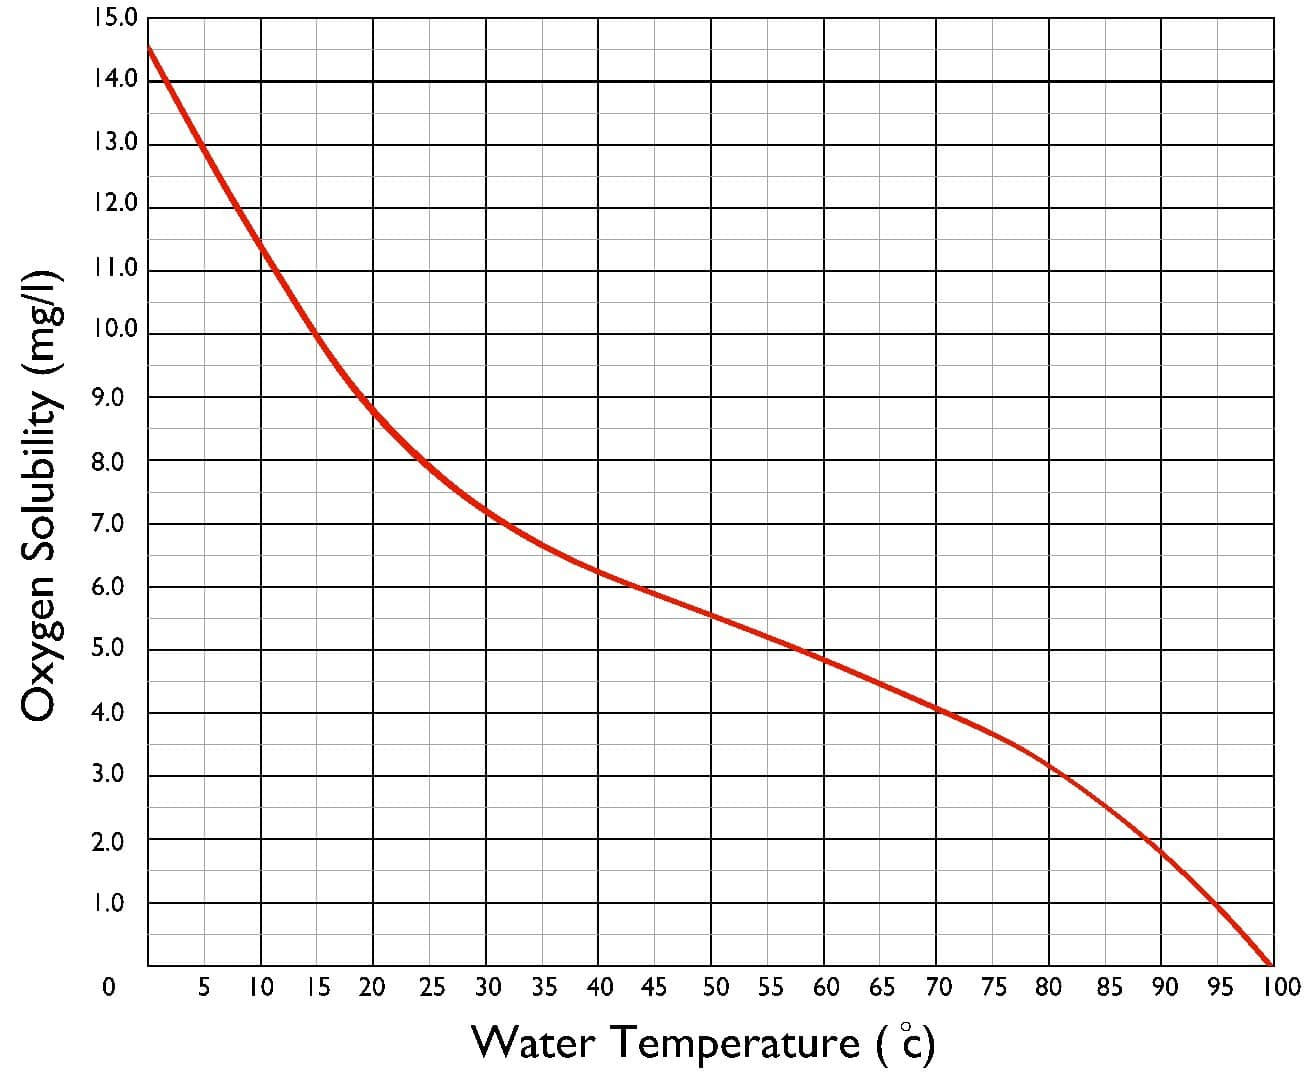 Gas Solubility Reduces as Temperature Increases